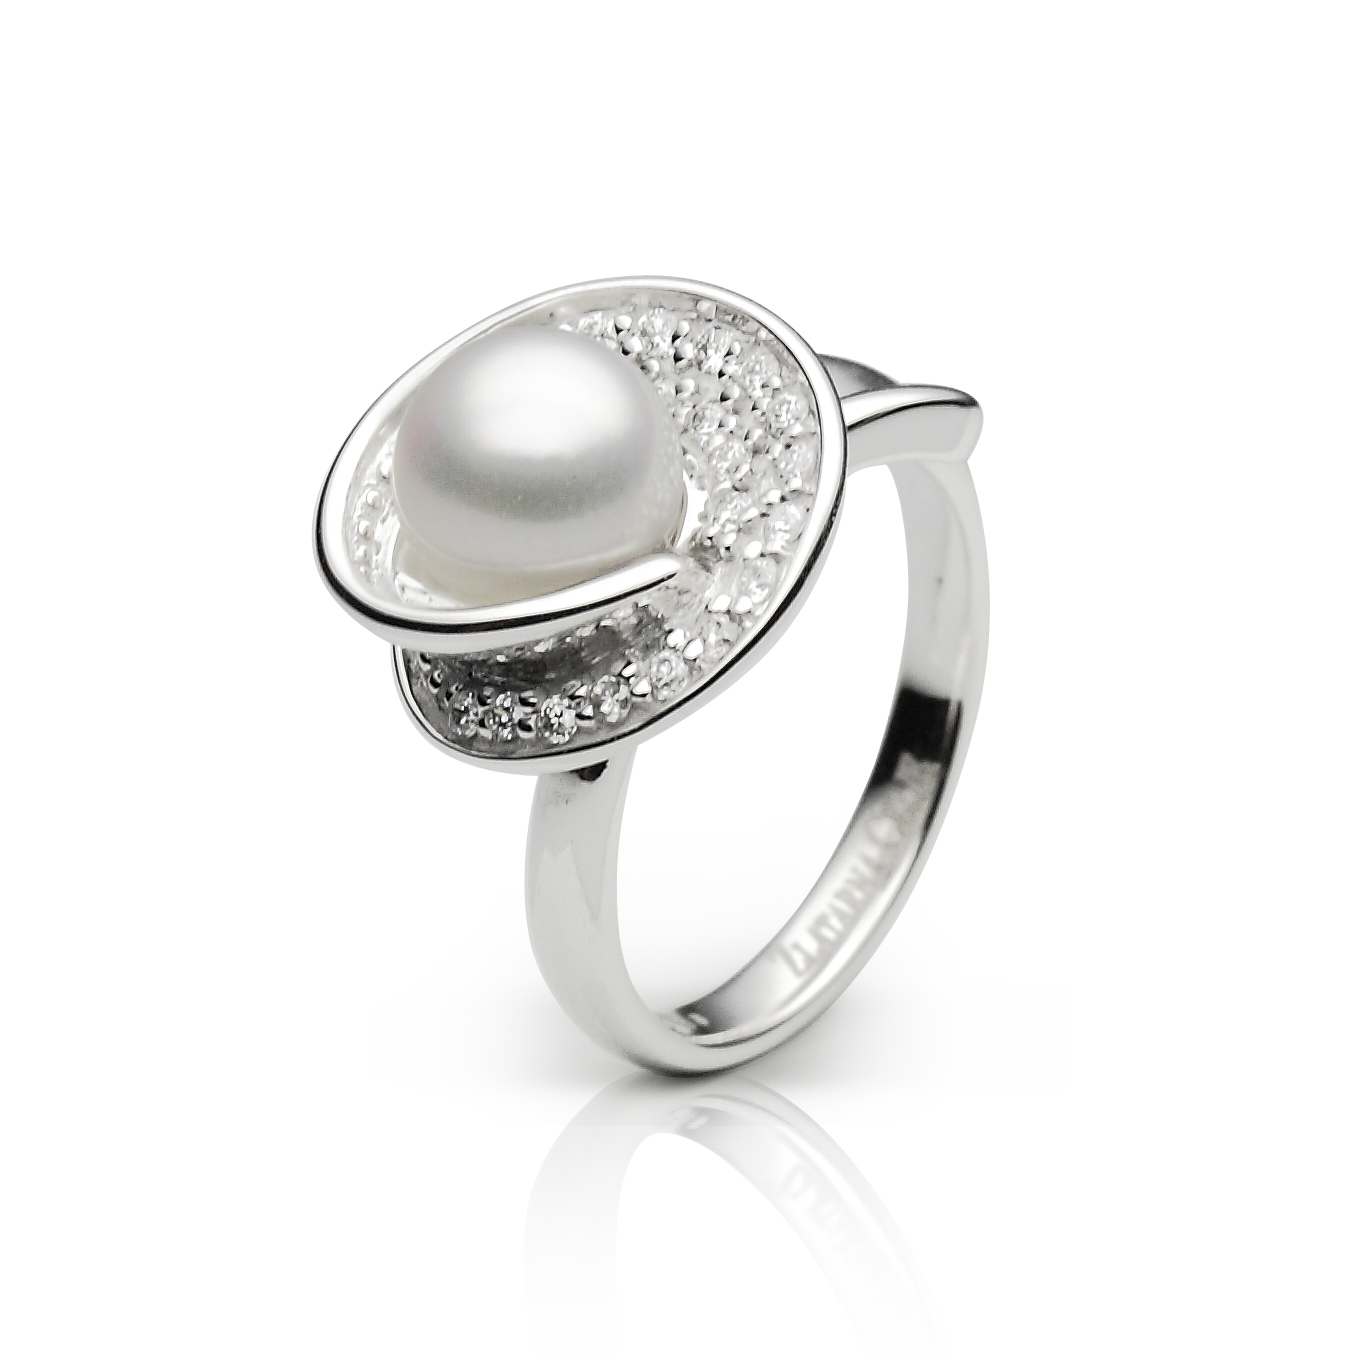 diamond 0,01 ct - 21 x; akoya white pearl or akoya black pearl fi 7,5 - 8 mm - 1 x